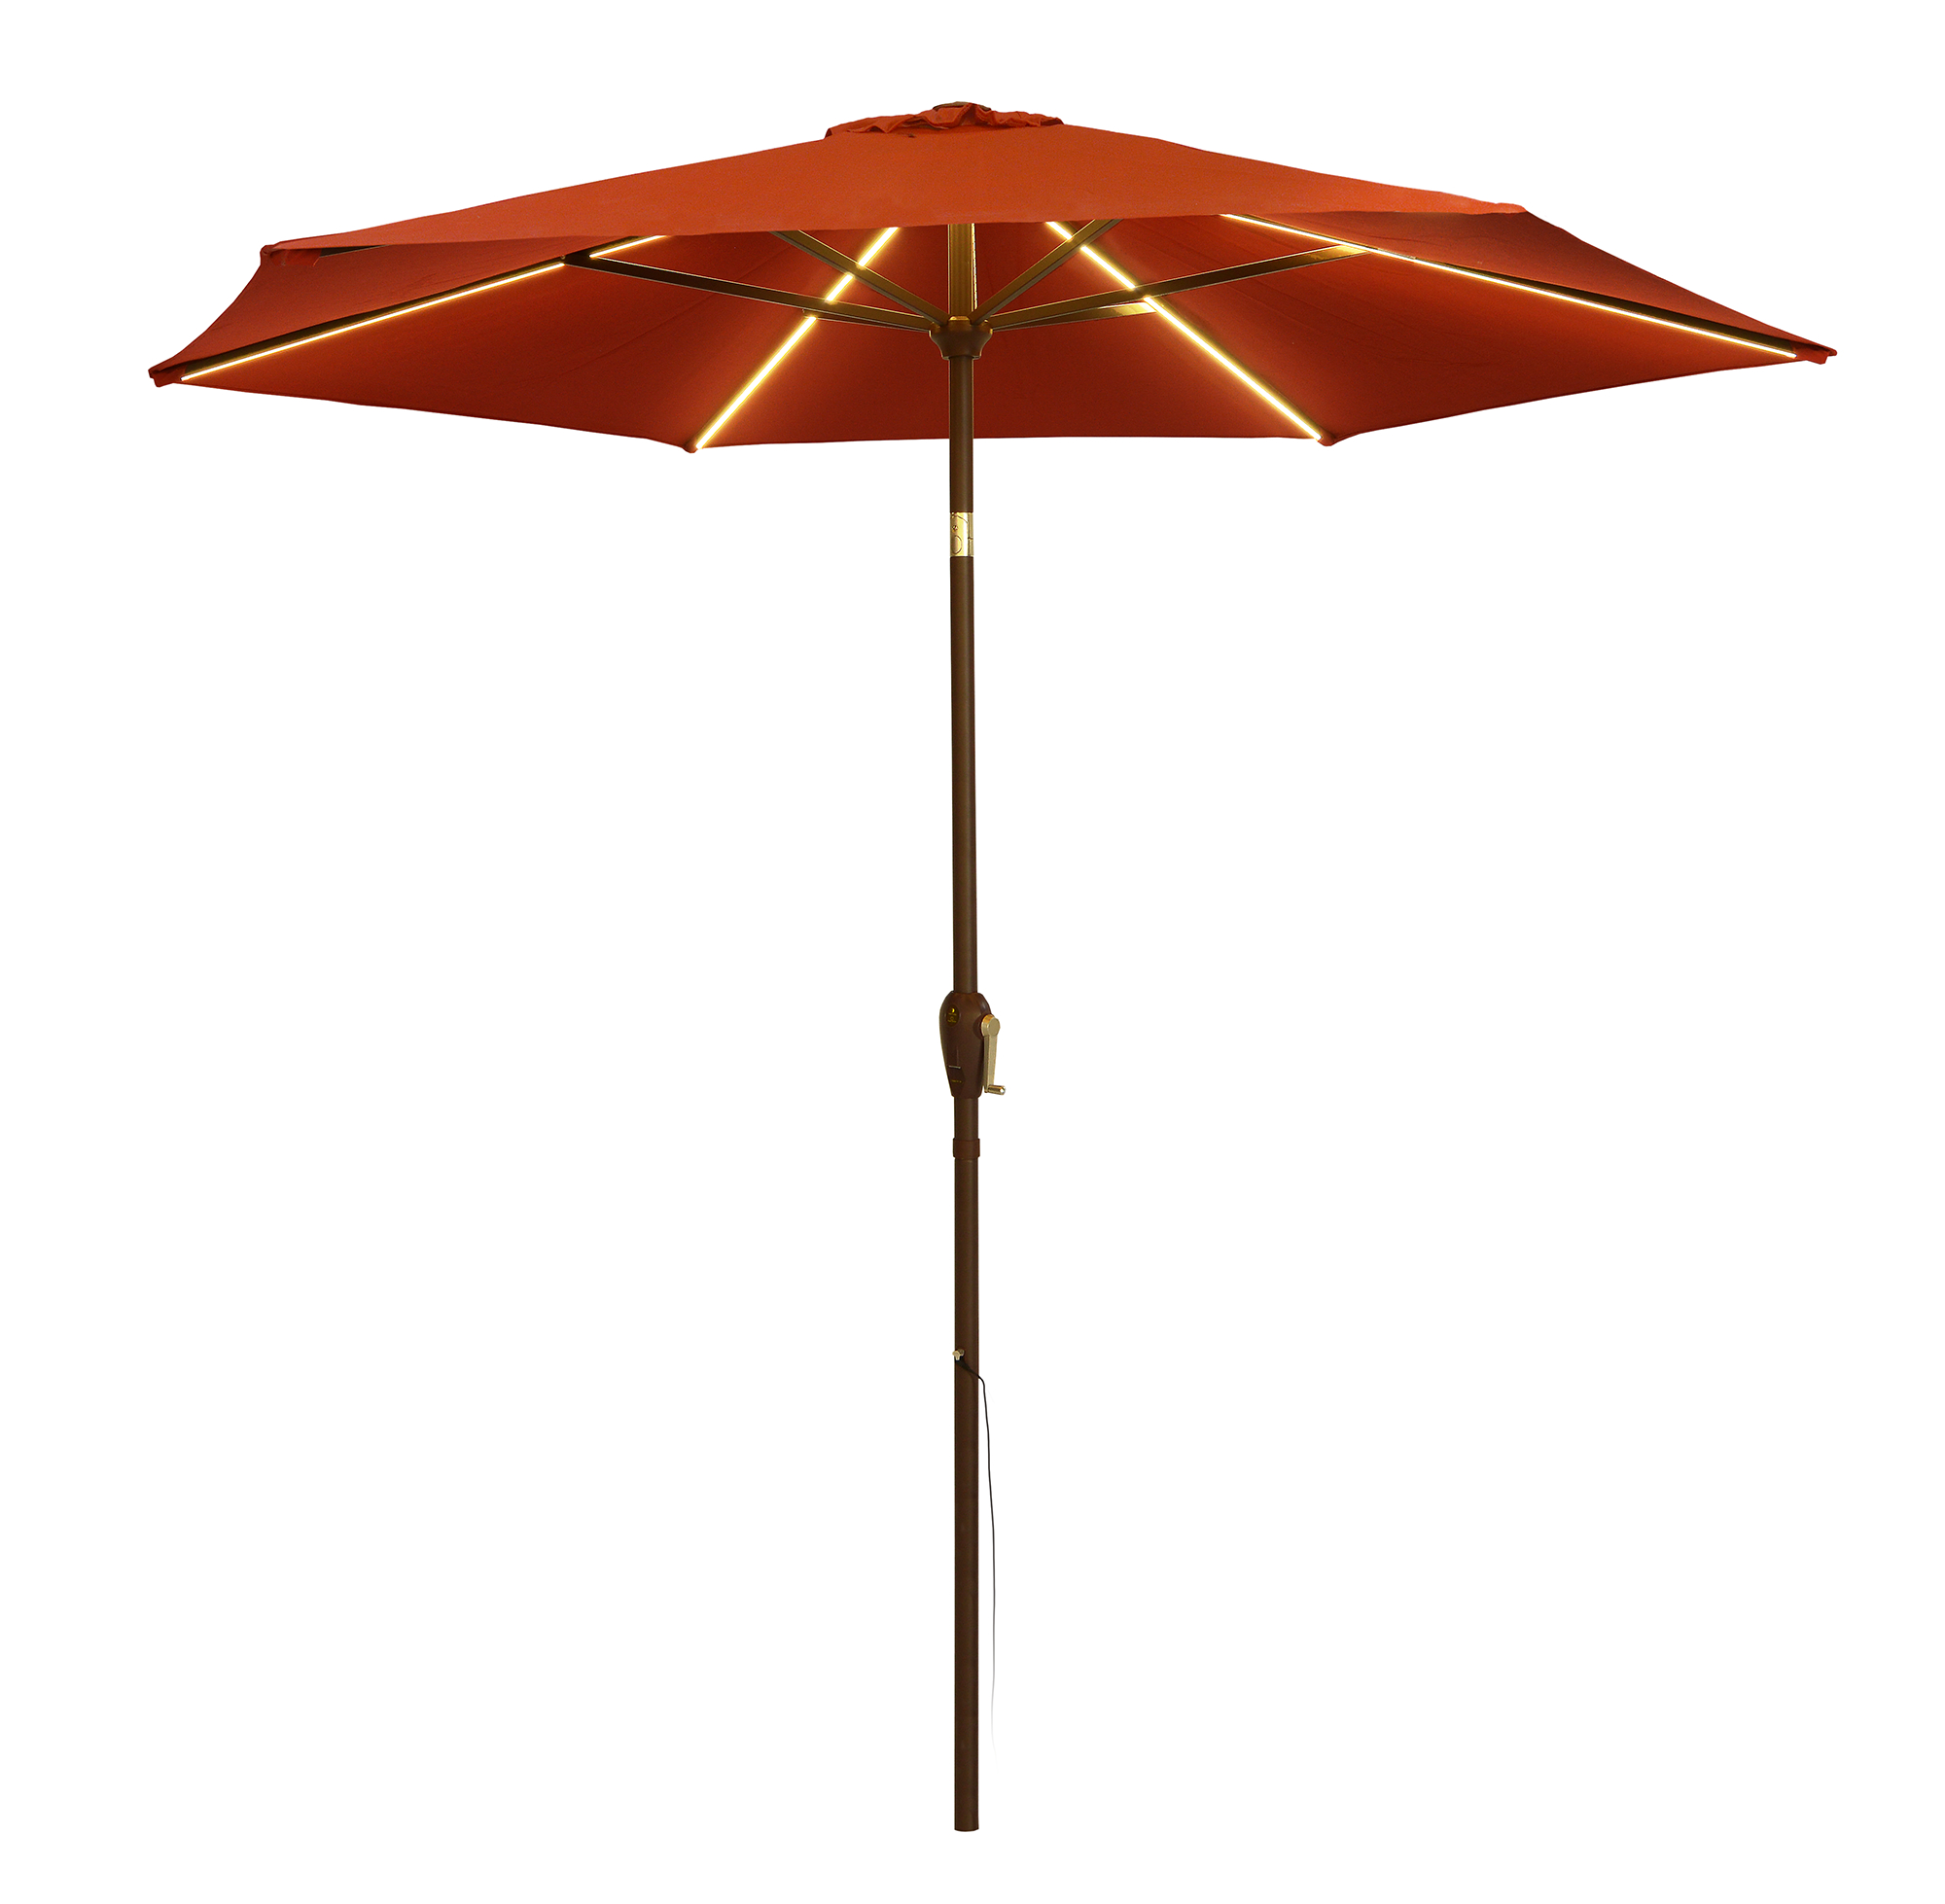 QS 9' UMBRELLA WARM WHITE, RED COVER